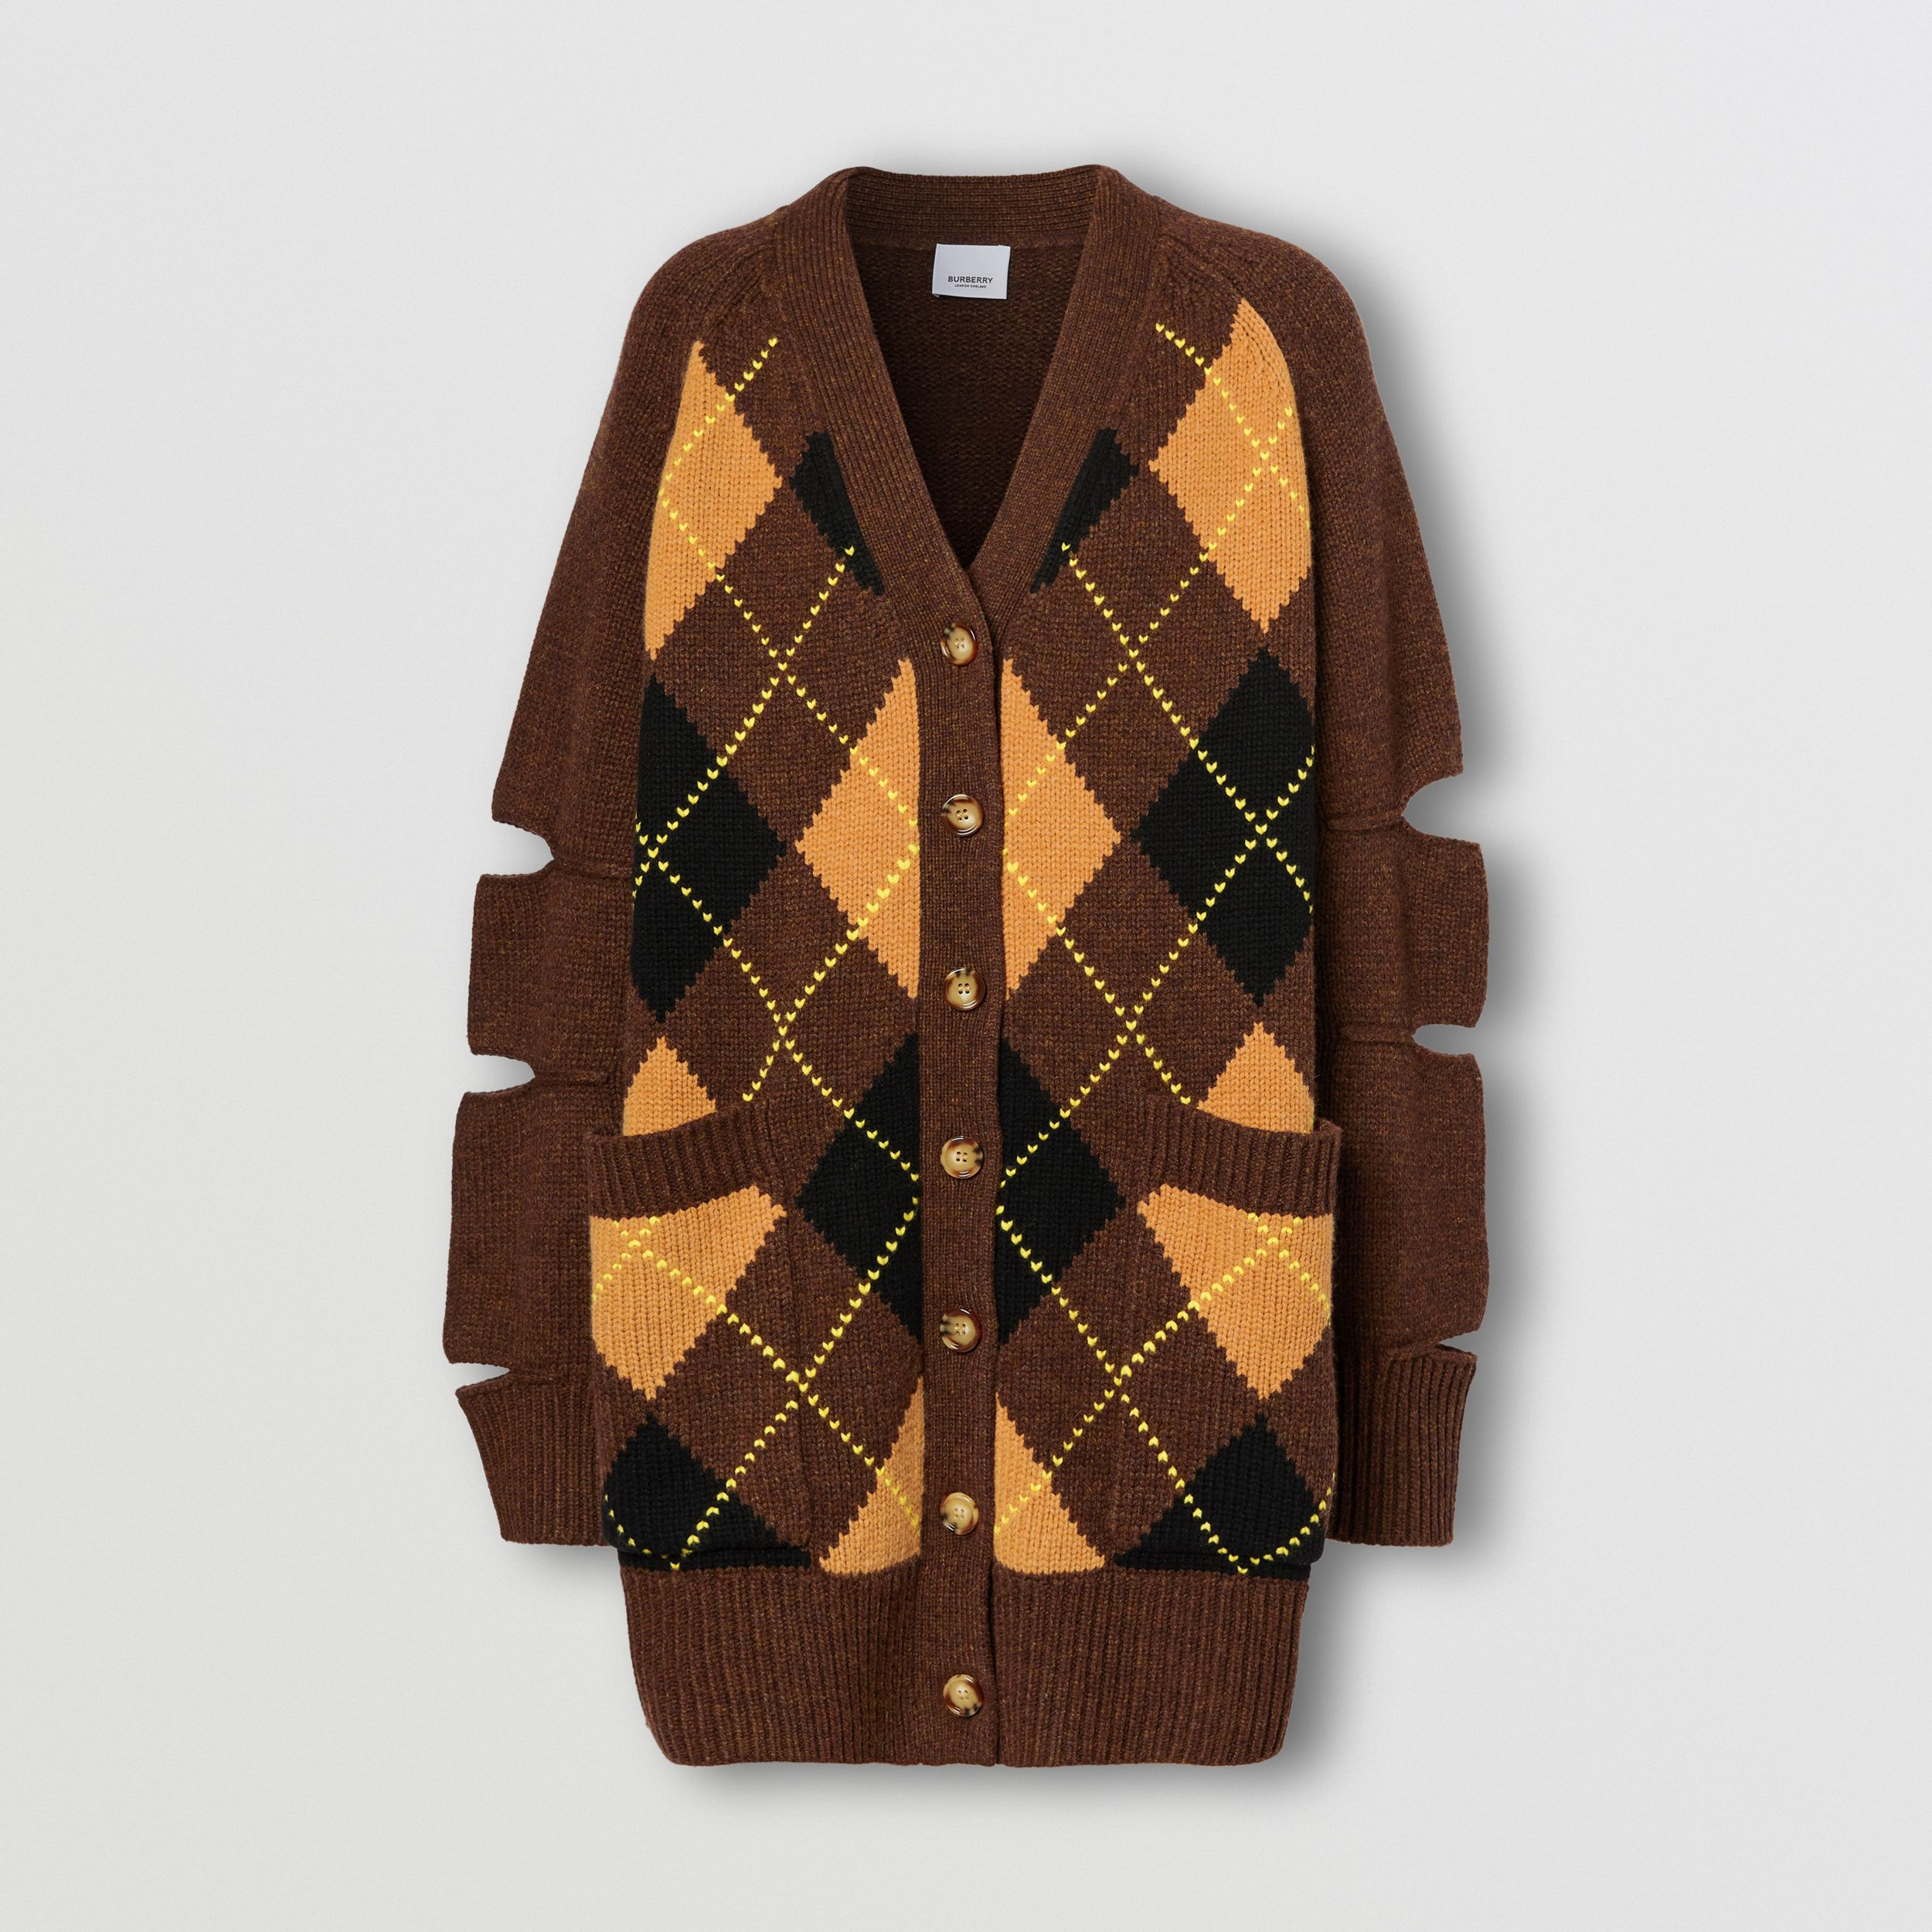 Cut-out Detail Argyle Intarsia Wool Cashmere Cardigan in Dark Khaki - Women | Burberry - 4